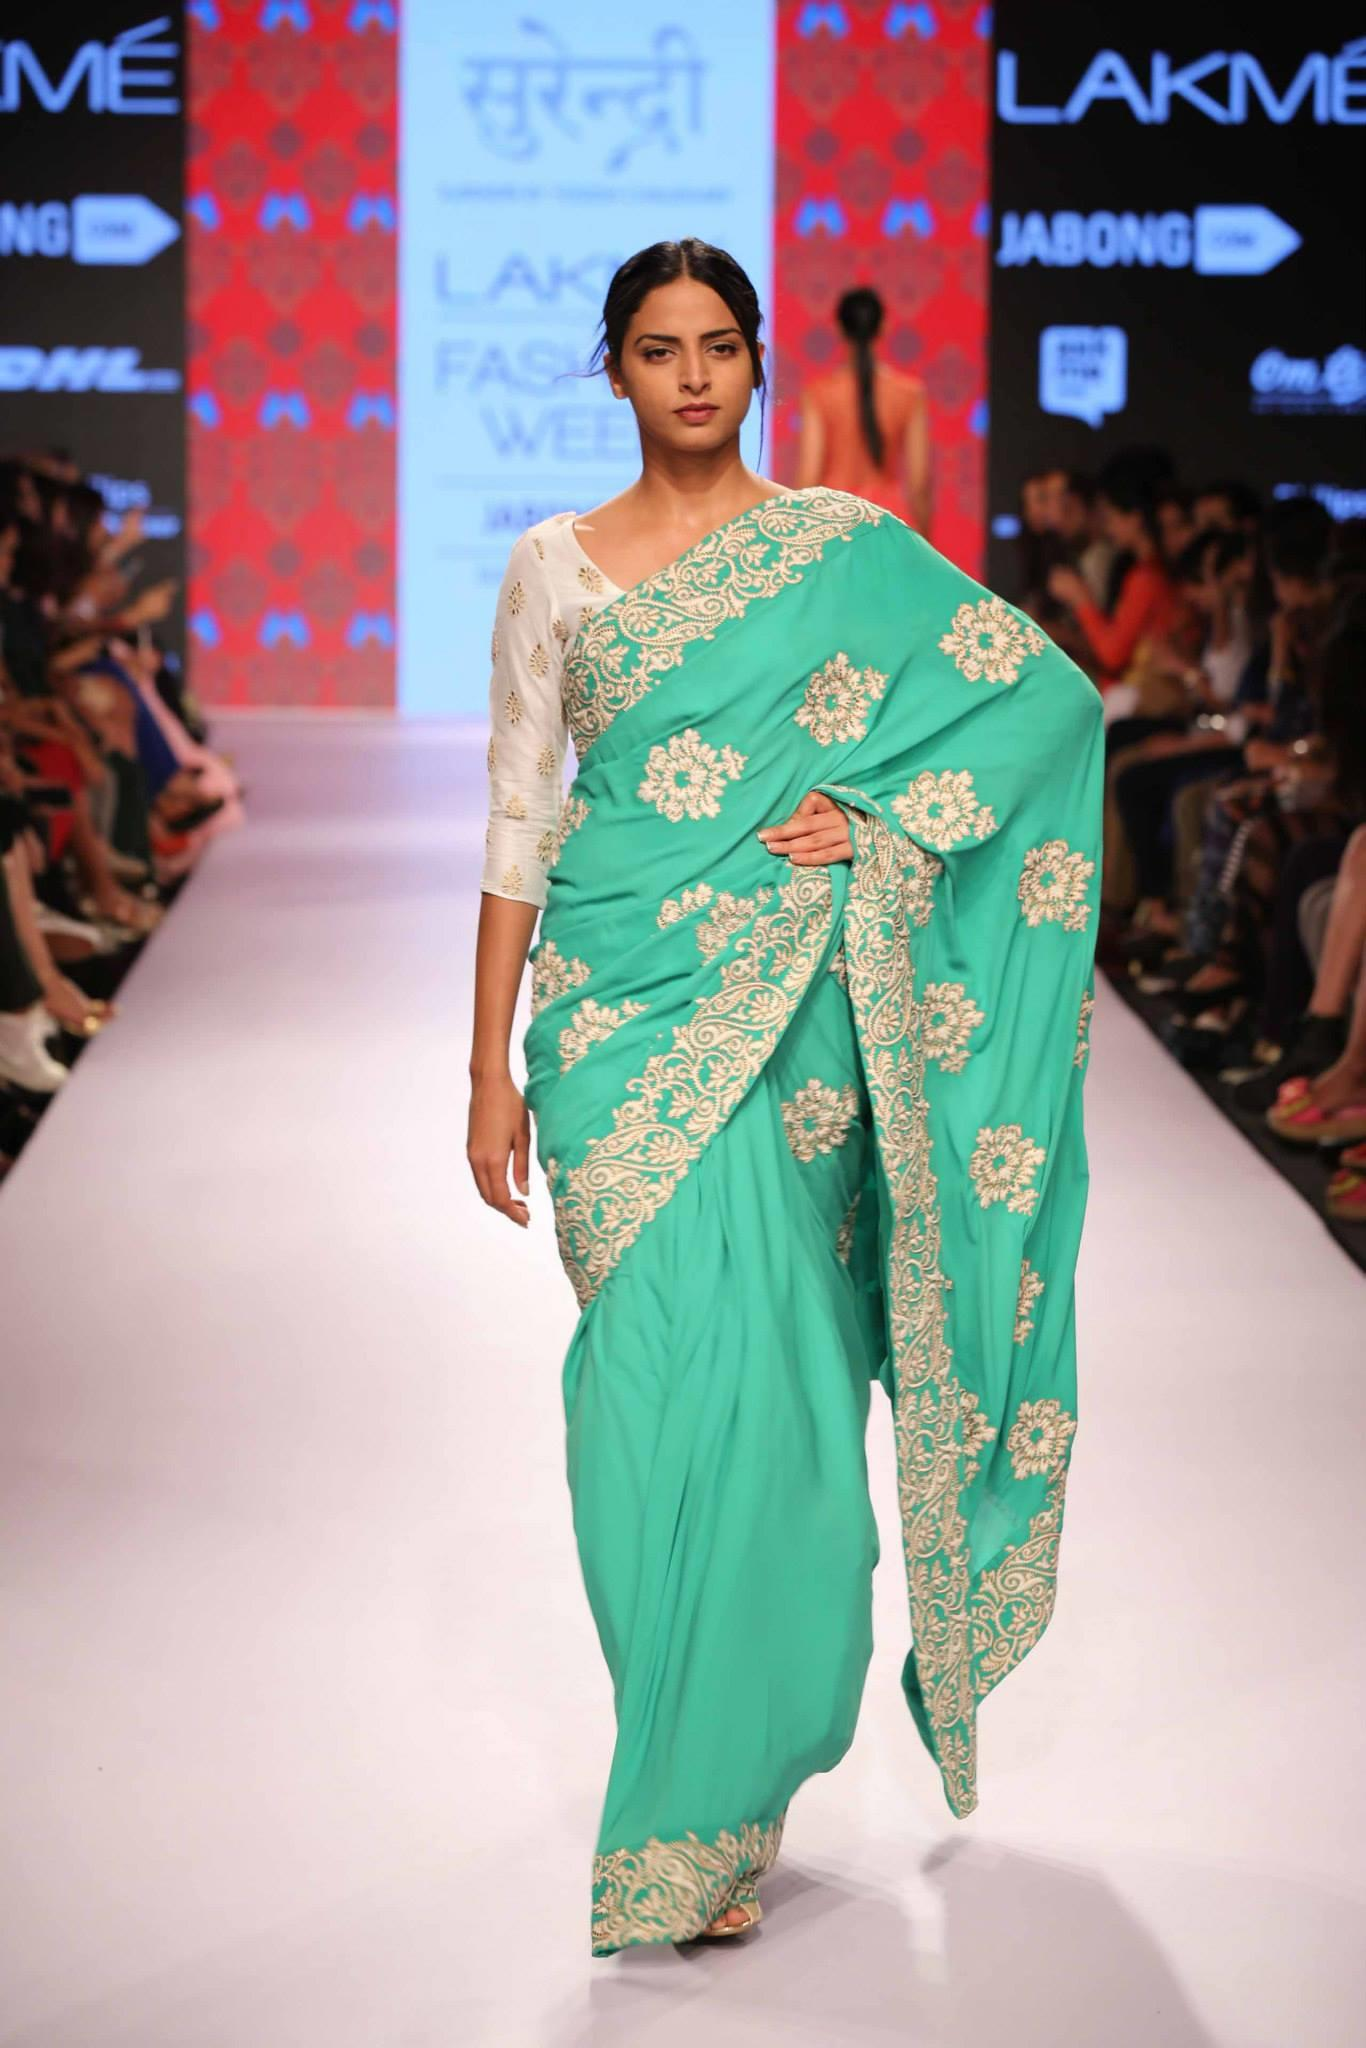 Day 1 of Lakme Fashion Week Summer 2015